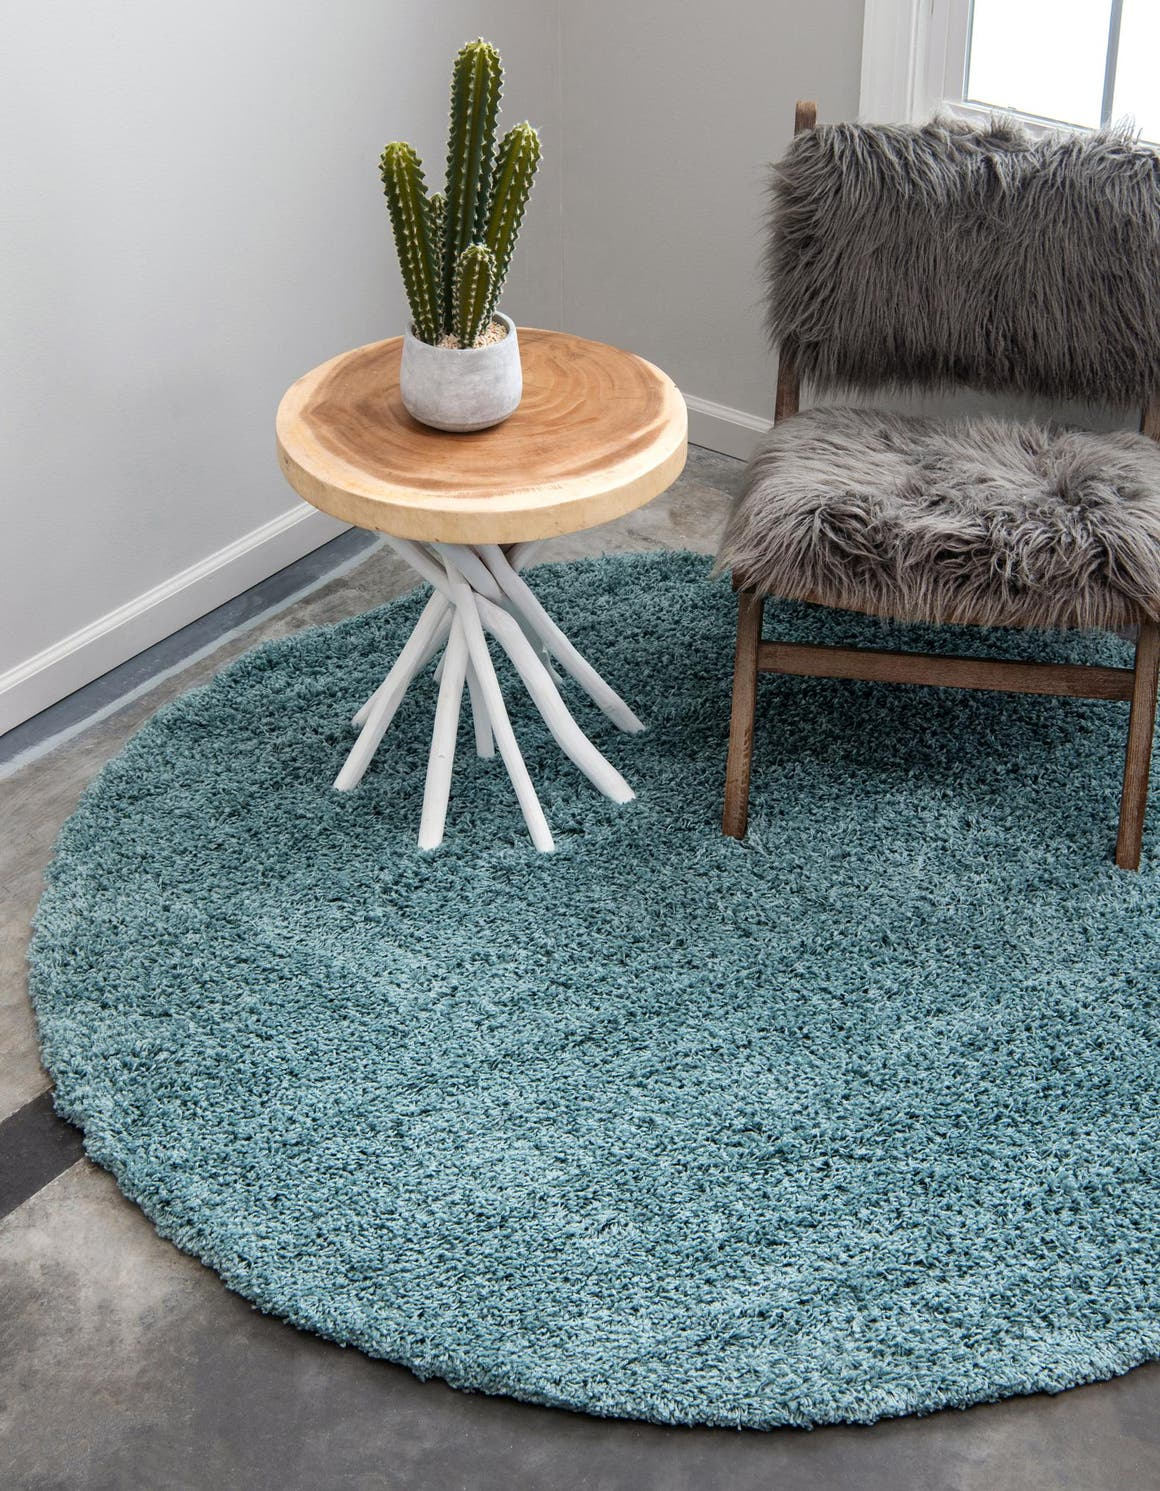 5' x 5' Solid Shag Round Rug main image